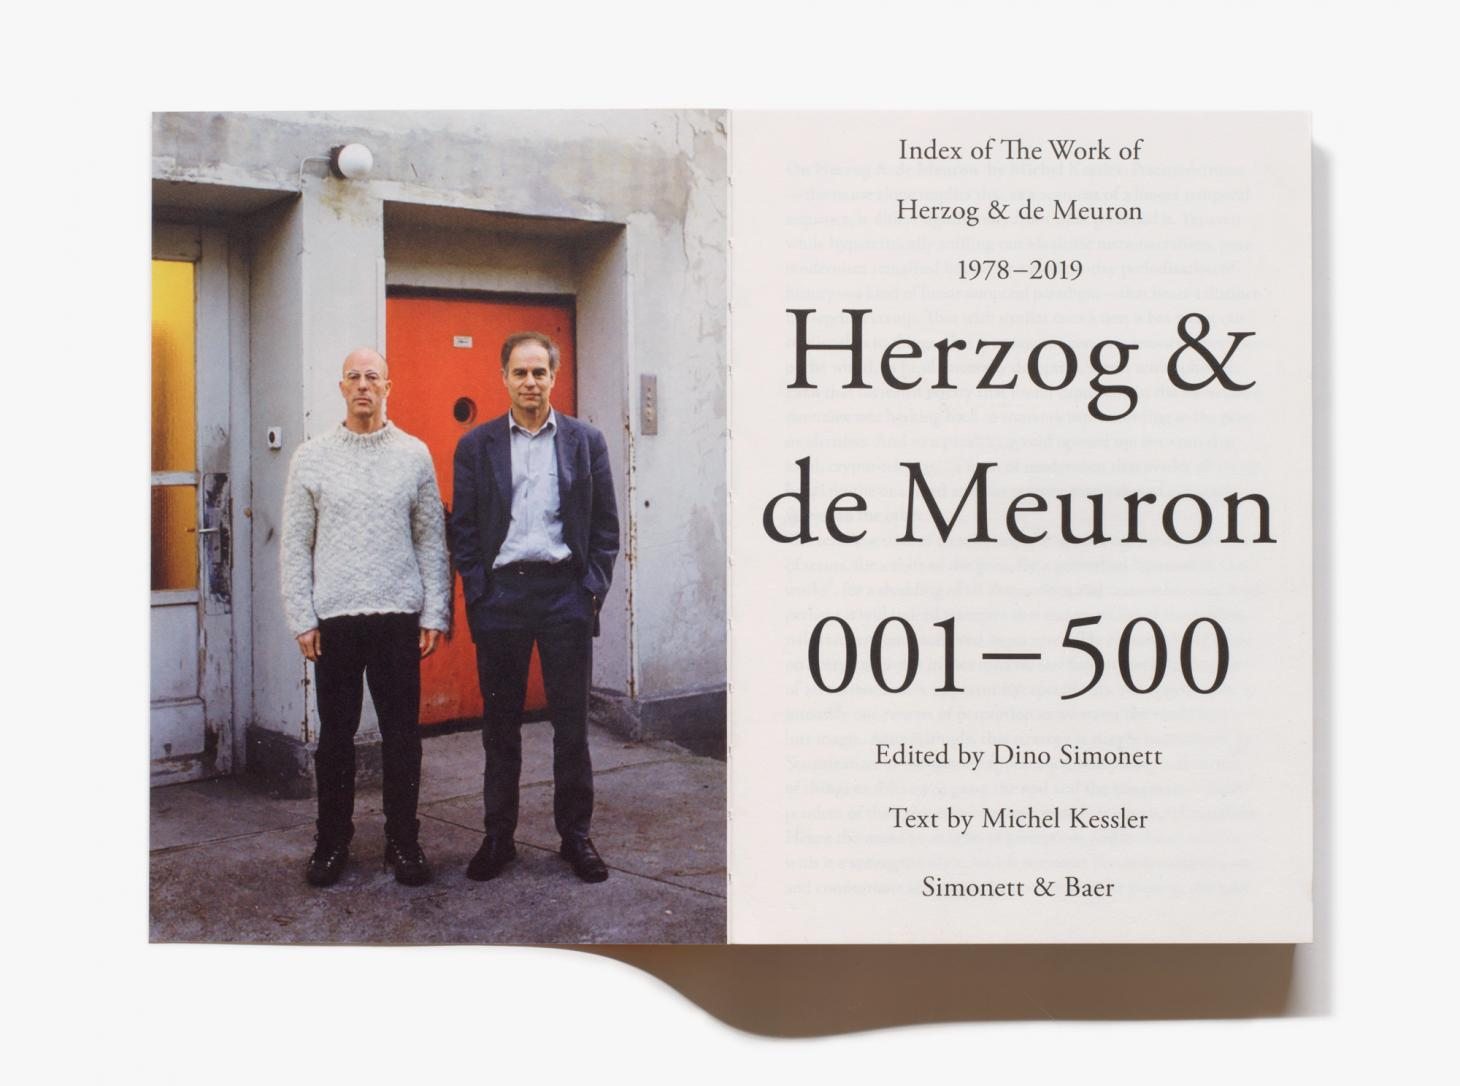 Herzog & de Meuron book published by Simonett & Baer